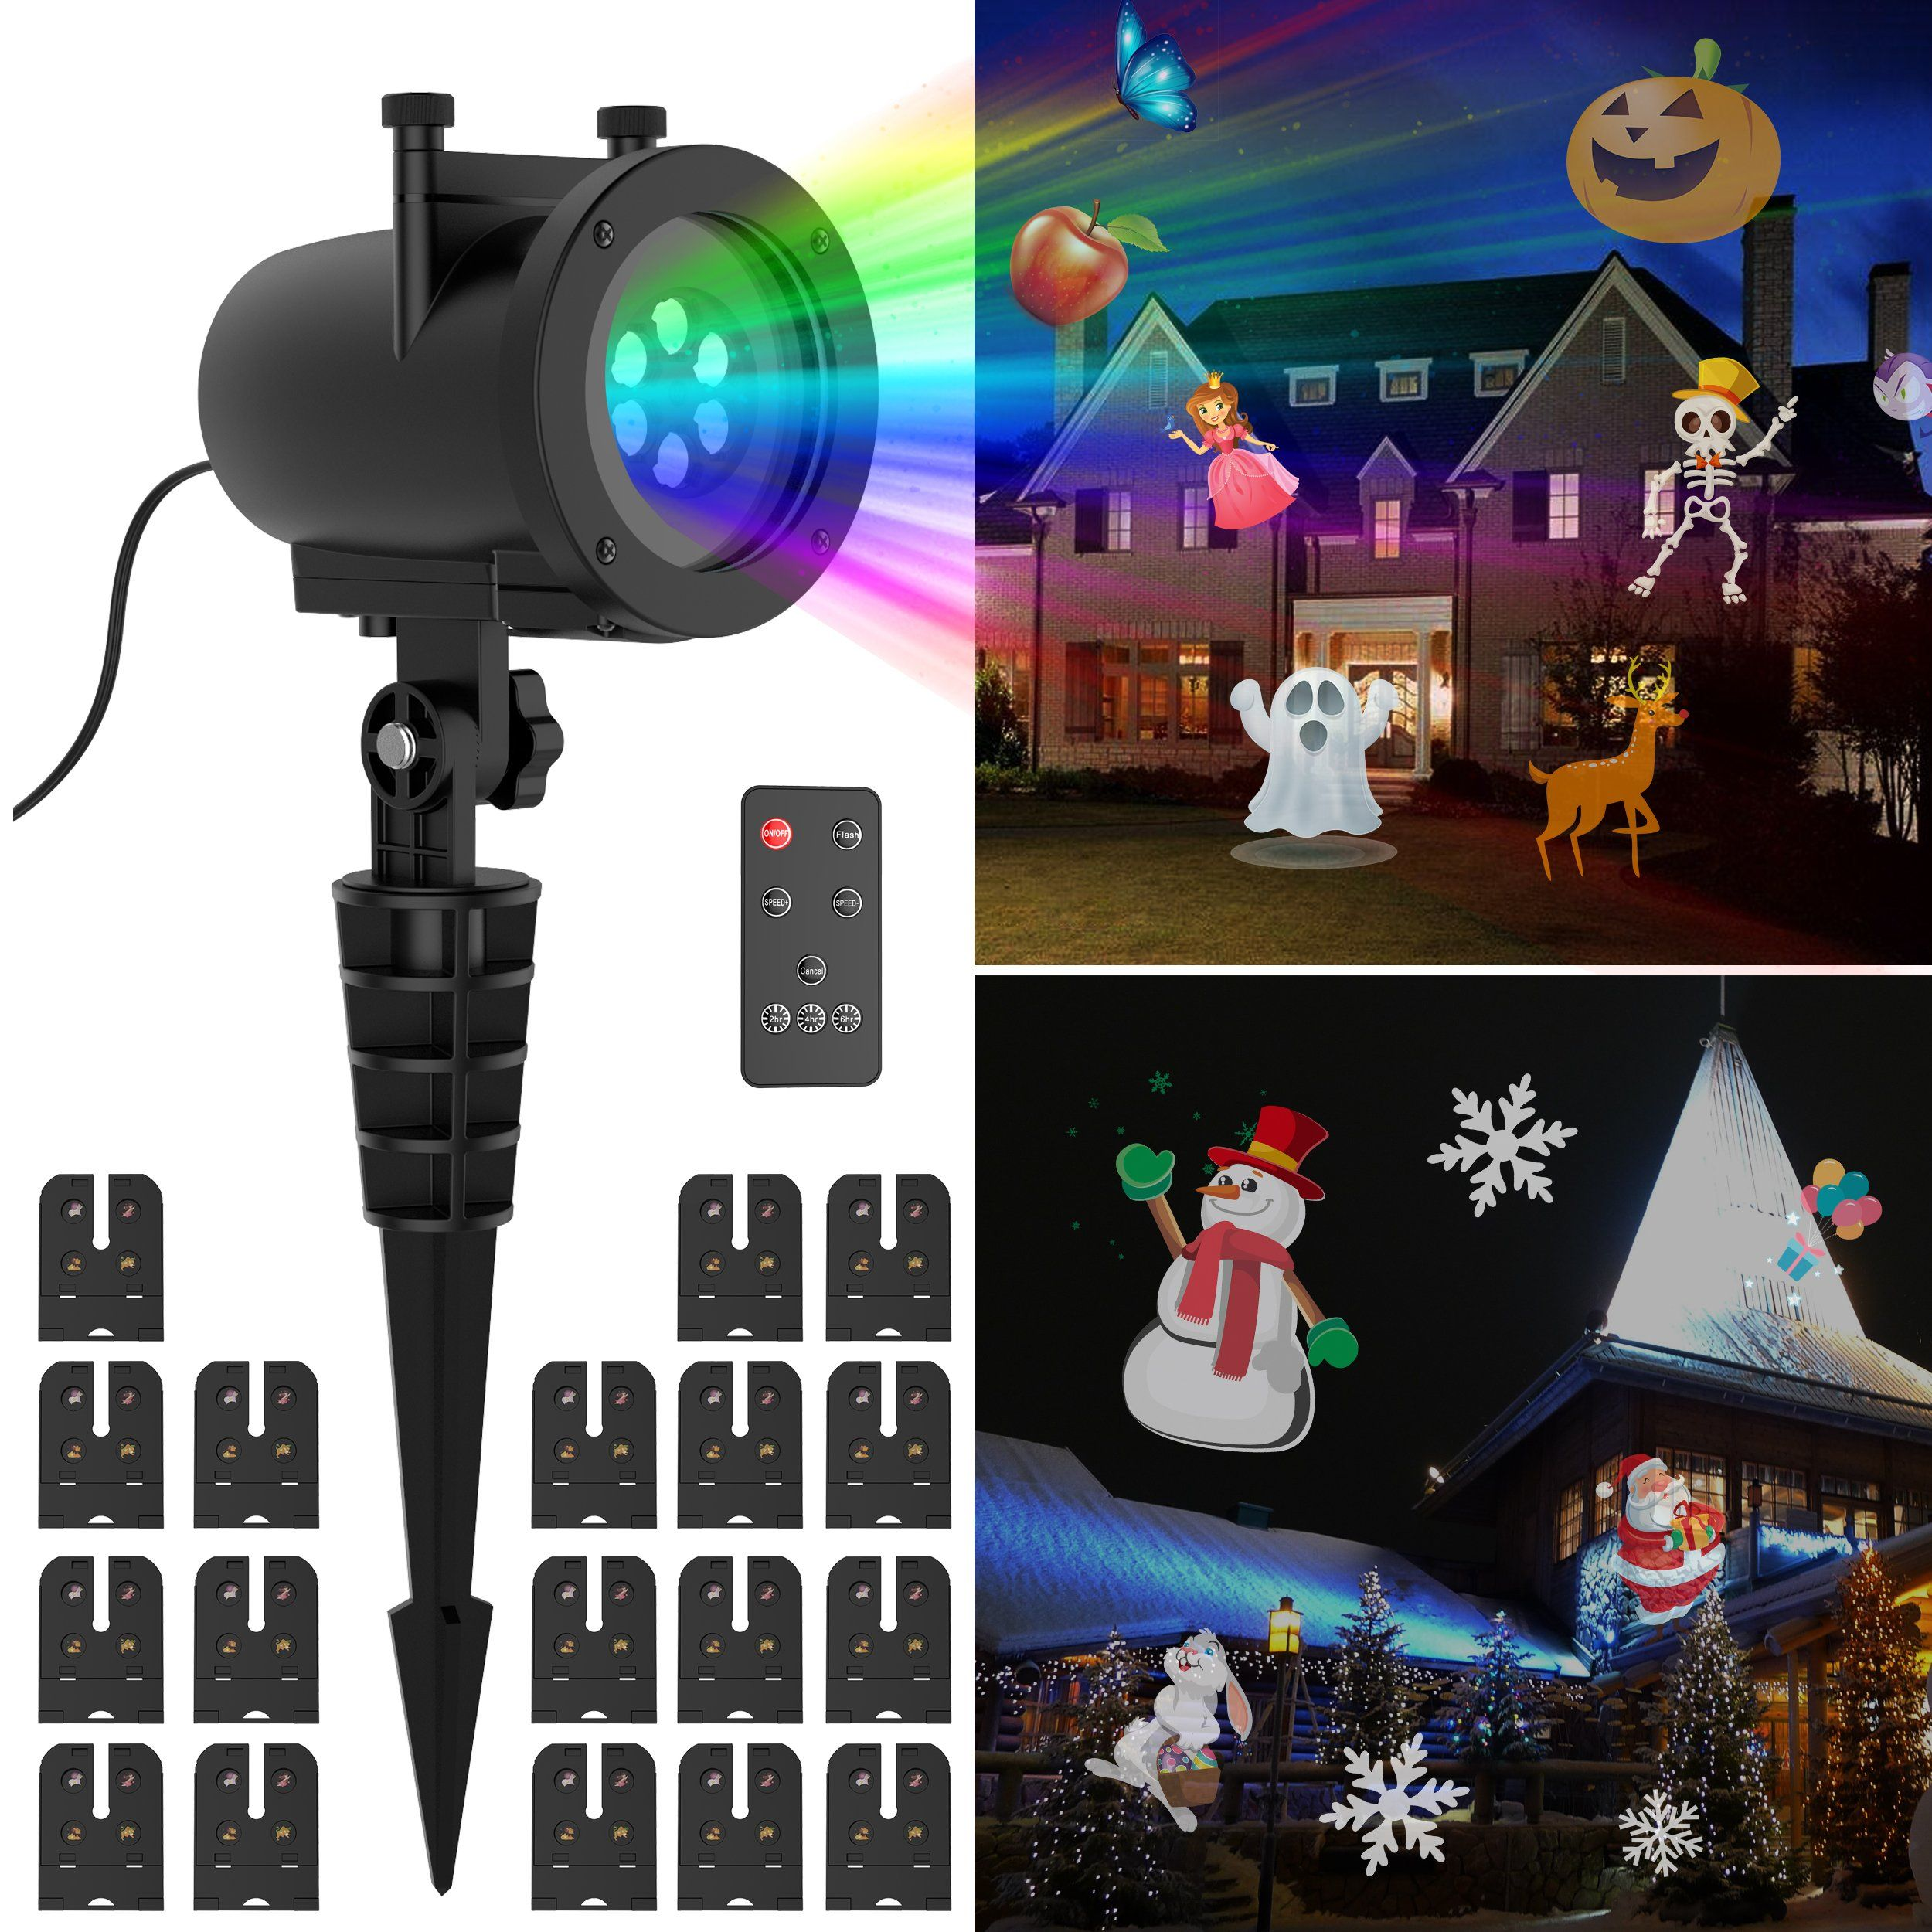 holiday show dreidel a hanukkah gemmy indoor led projection outdoor lightshow lights lighting jewish whirl pin light motion